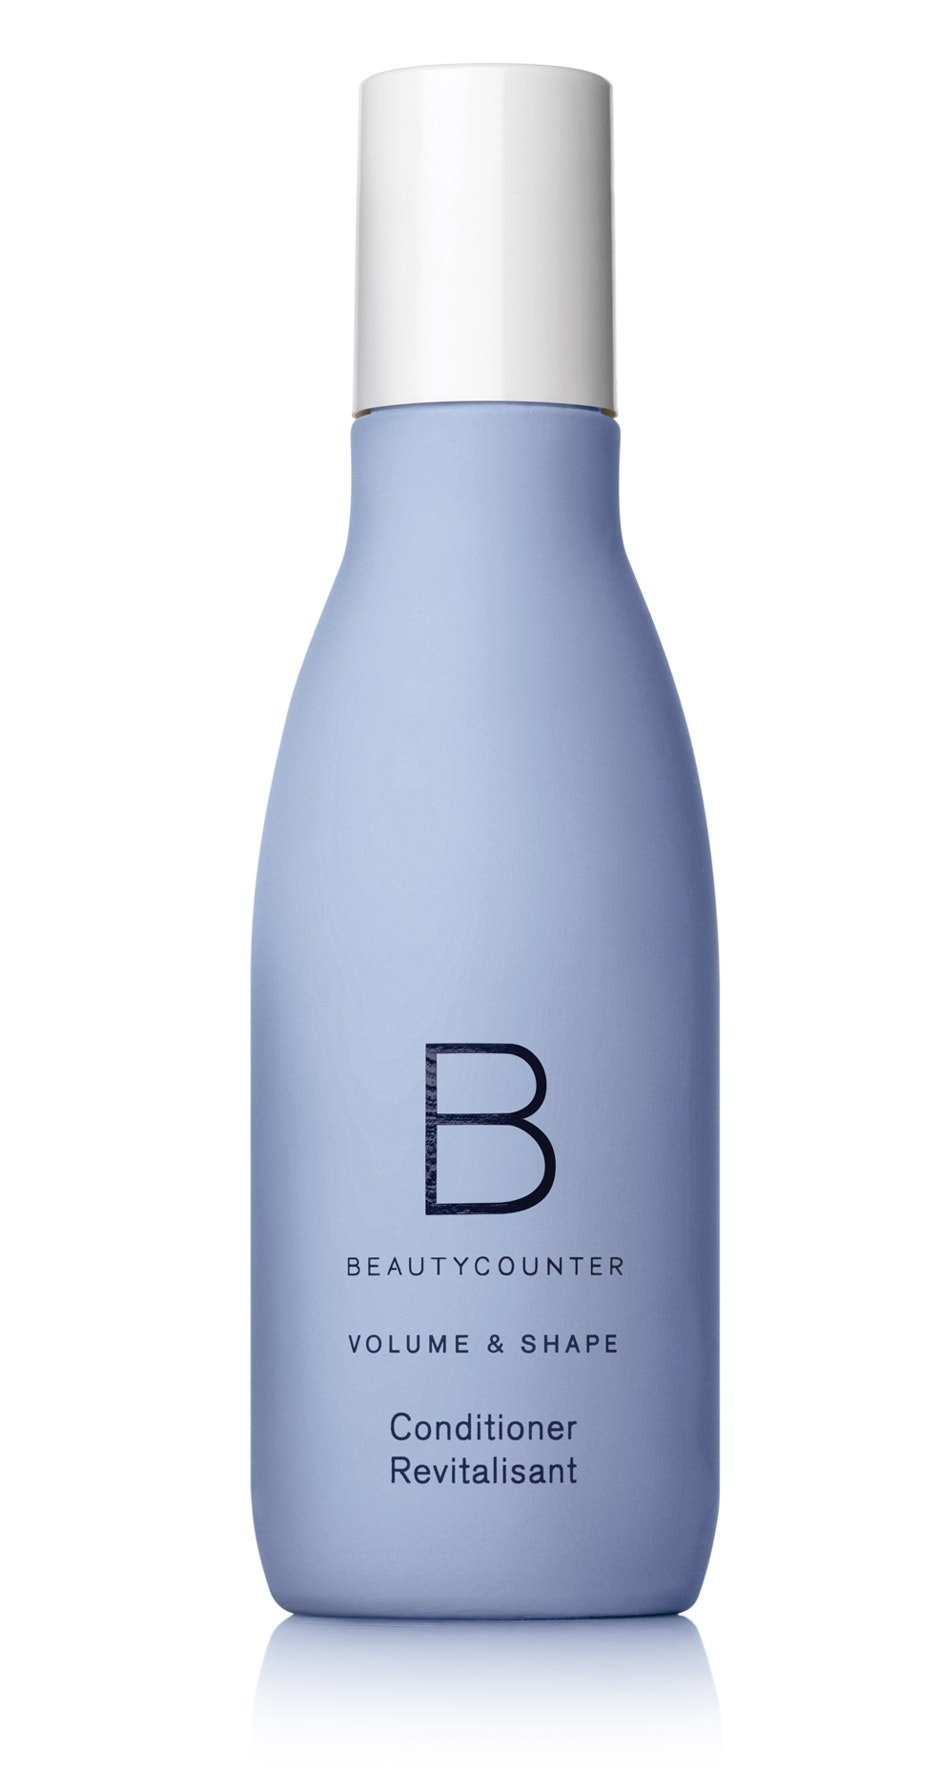 Volume & Shape Conditioner